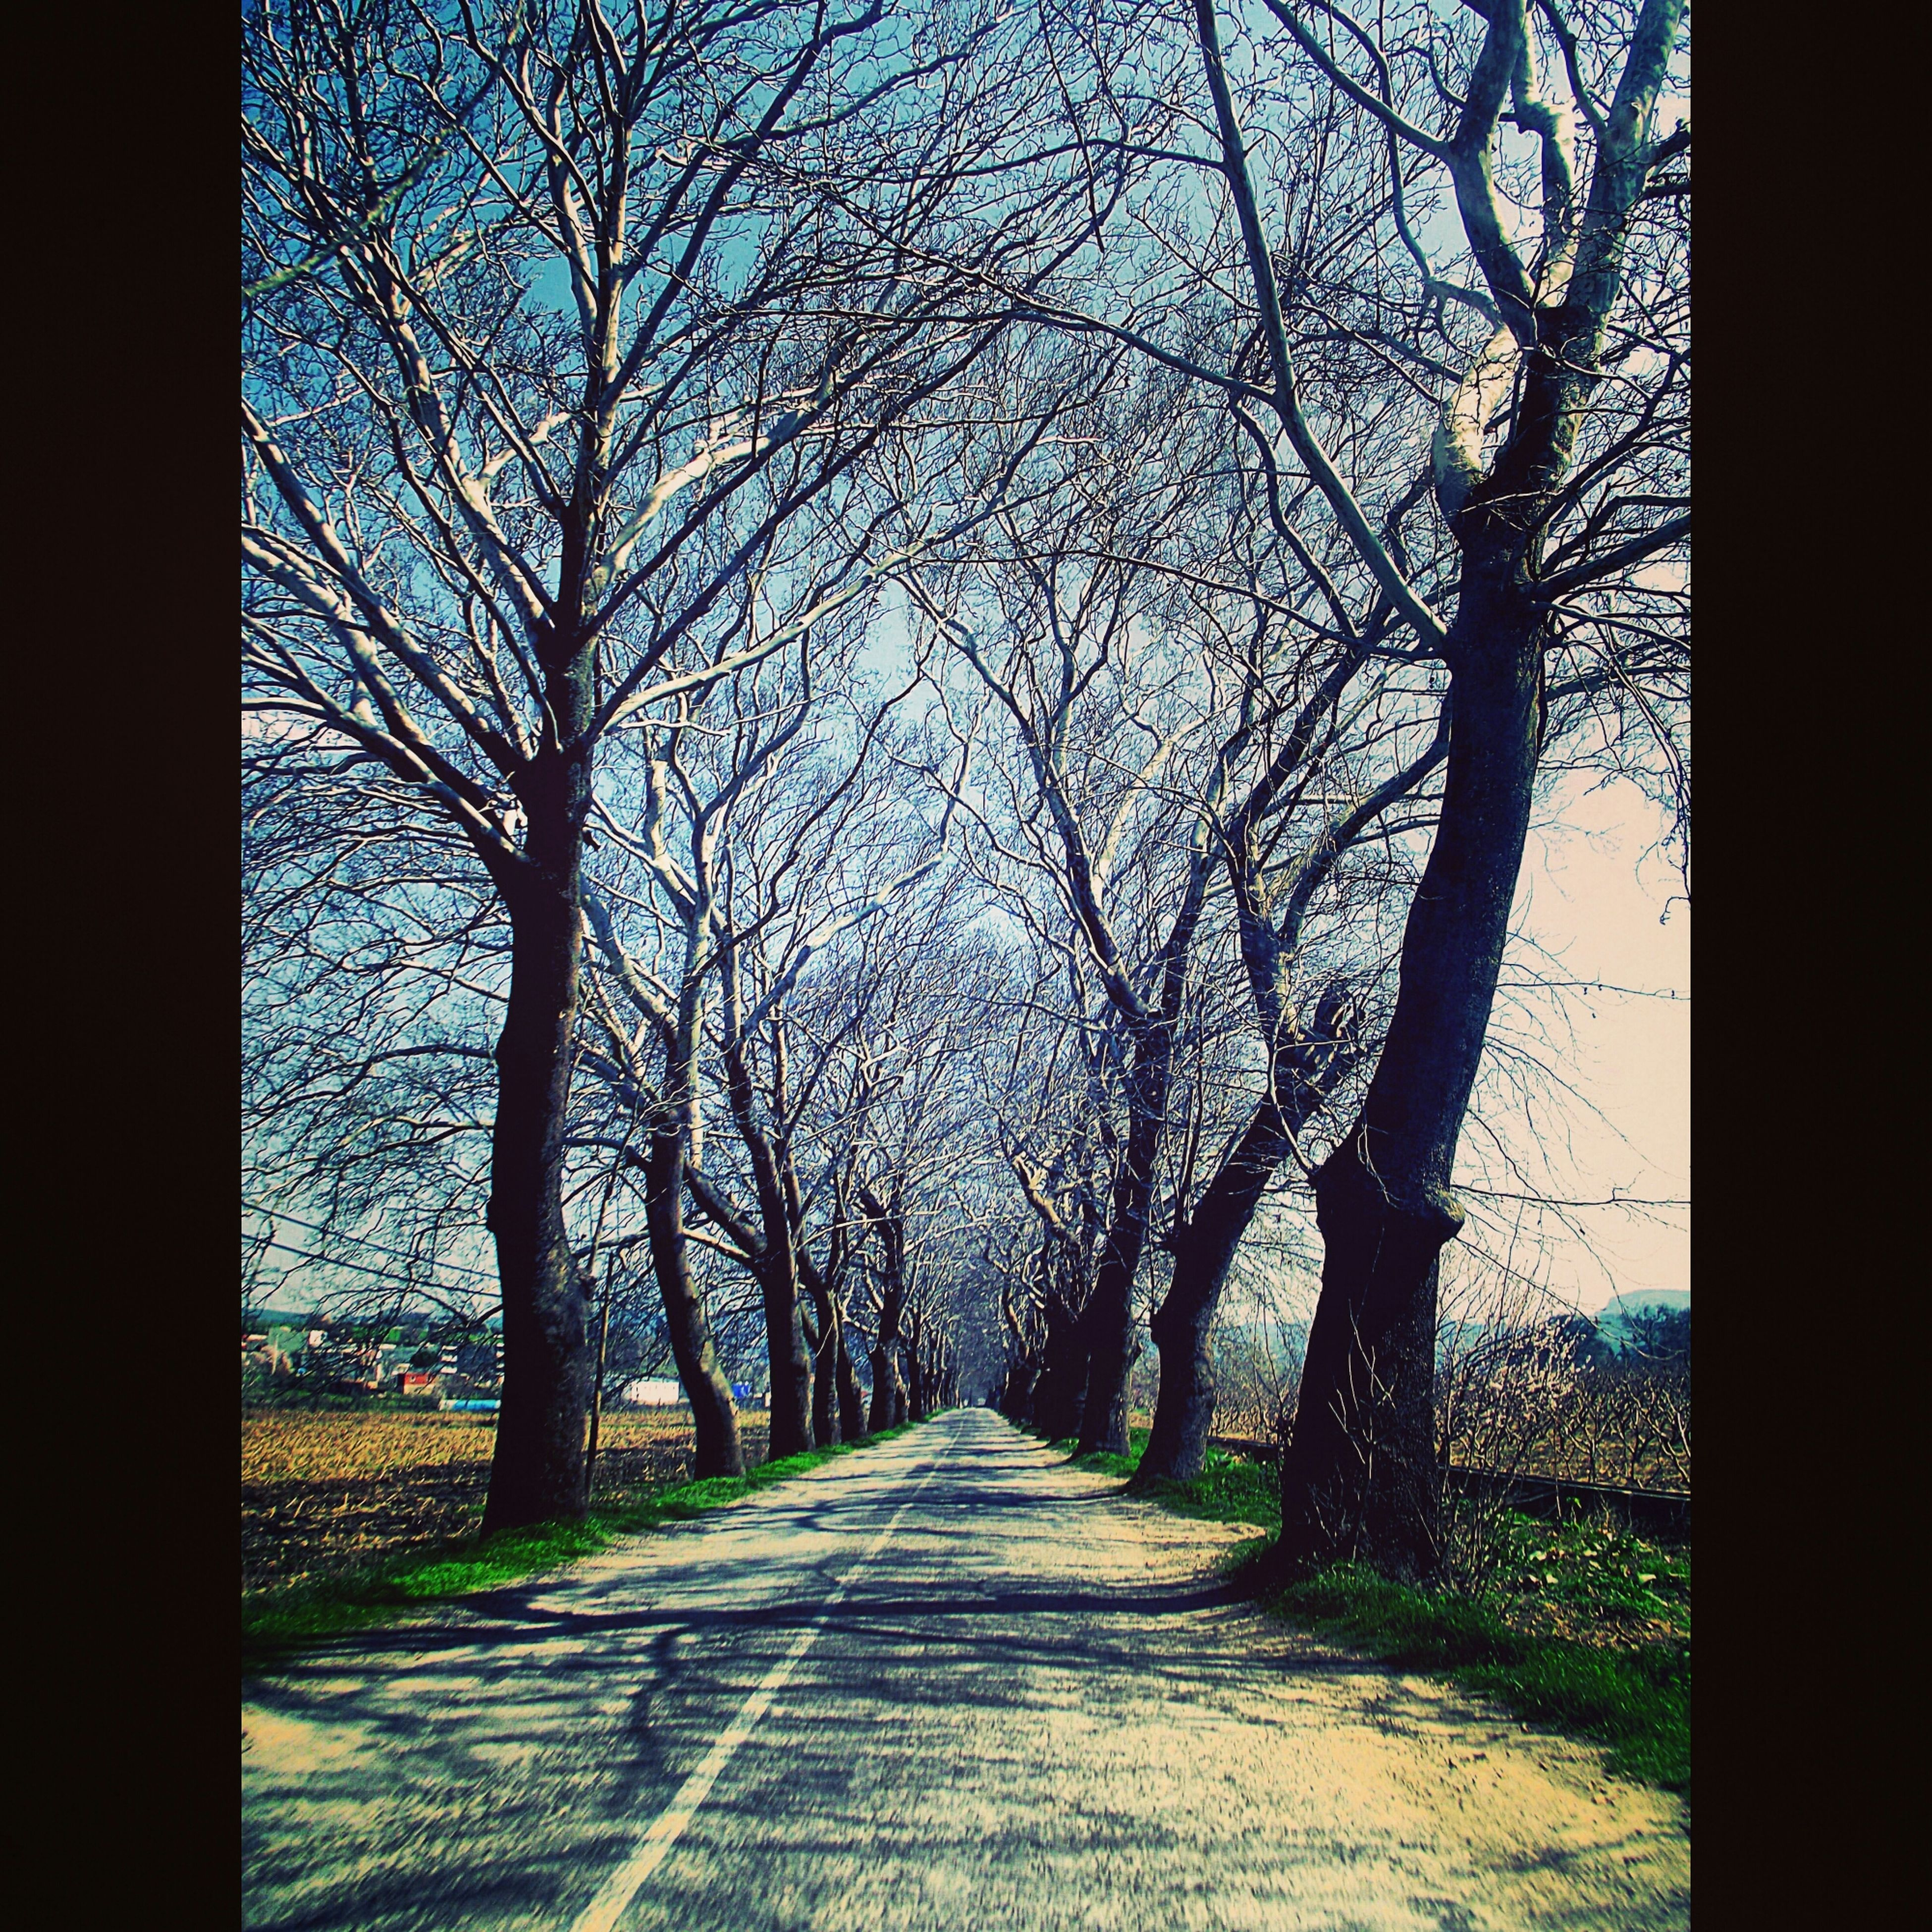 tree, the way forward, bare tree, branch, diminishing perspective, tree trunk, tranquility, treelined, tranquil scene, nature, vanishing point, road, footpath, transfer print, scenics, auto post production filter, narrow, beauty in nature, empty, day